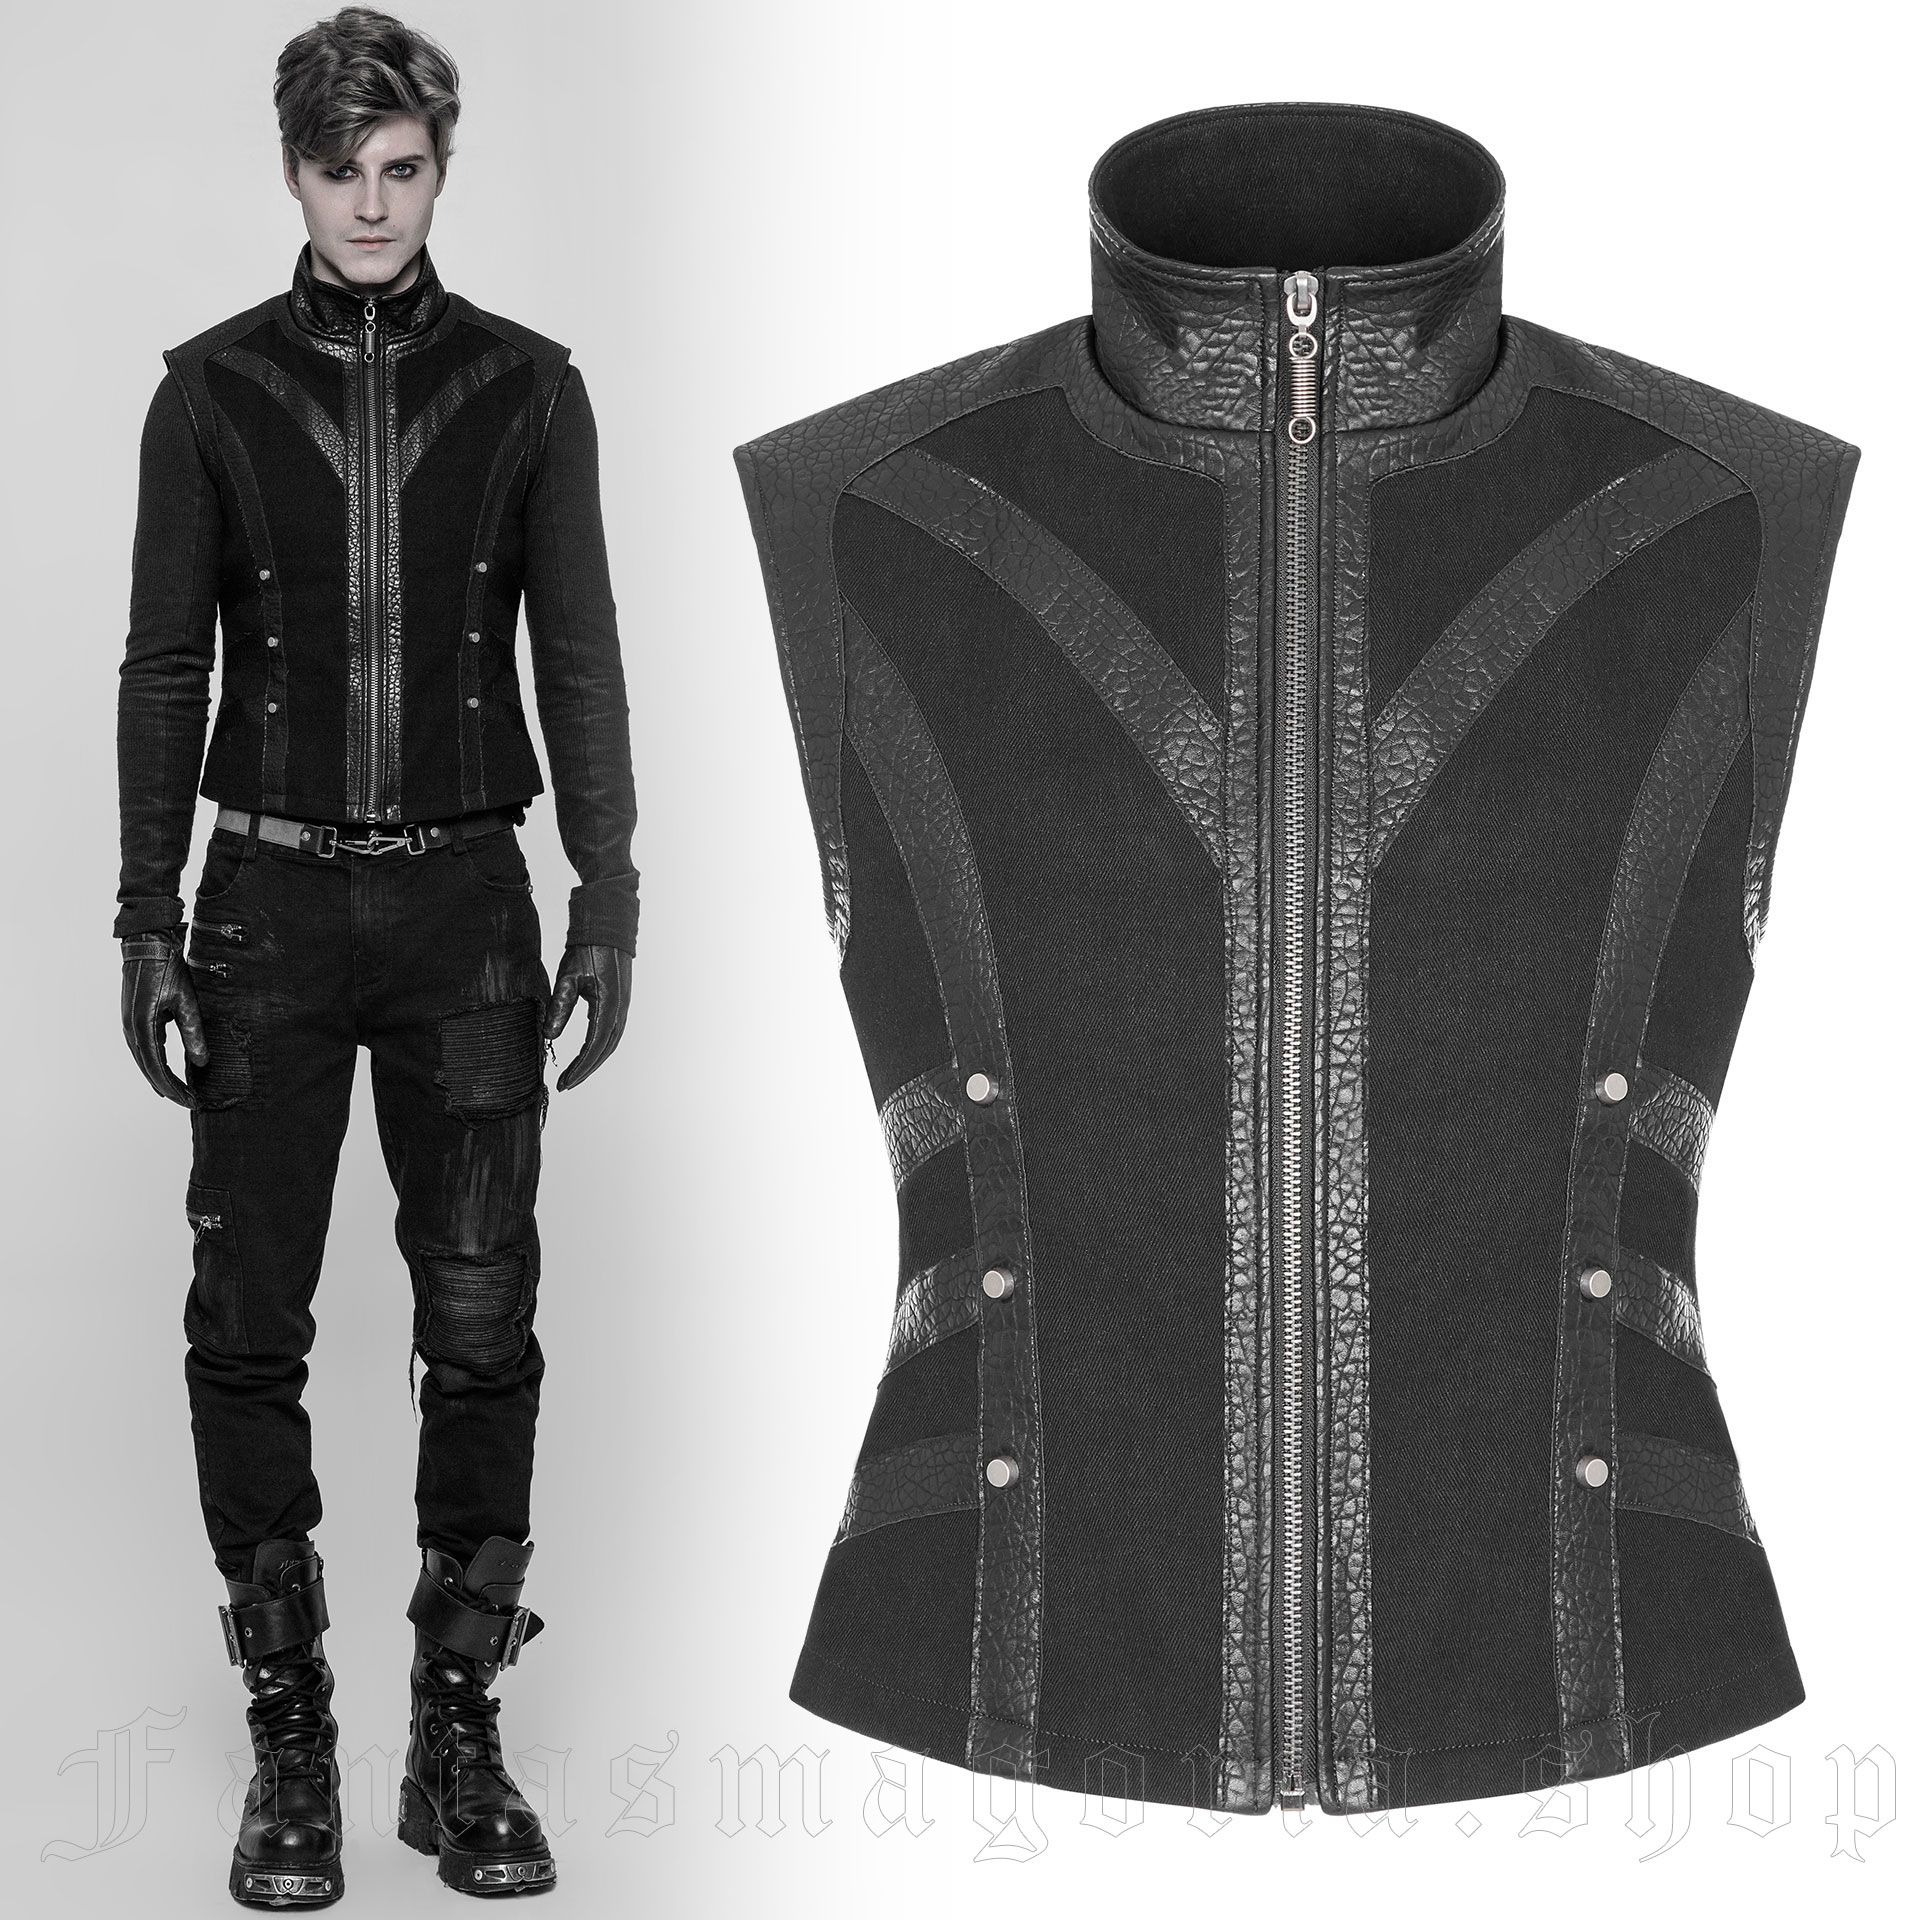 men's Panzer Vest by PUNK RAVE brand, code: WY-930